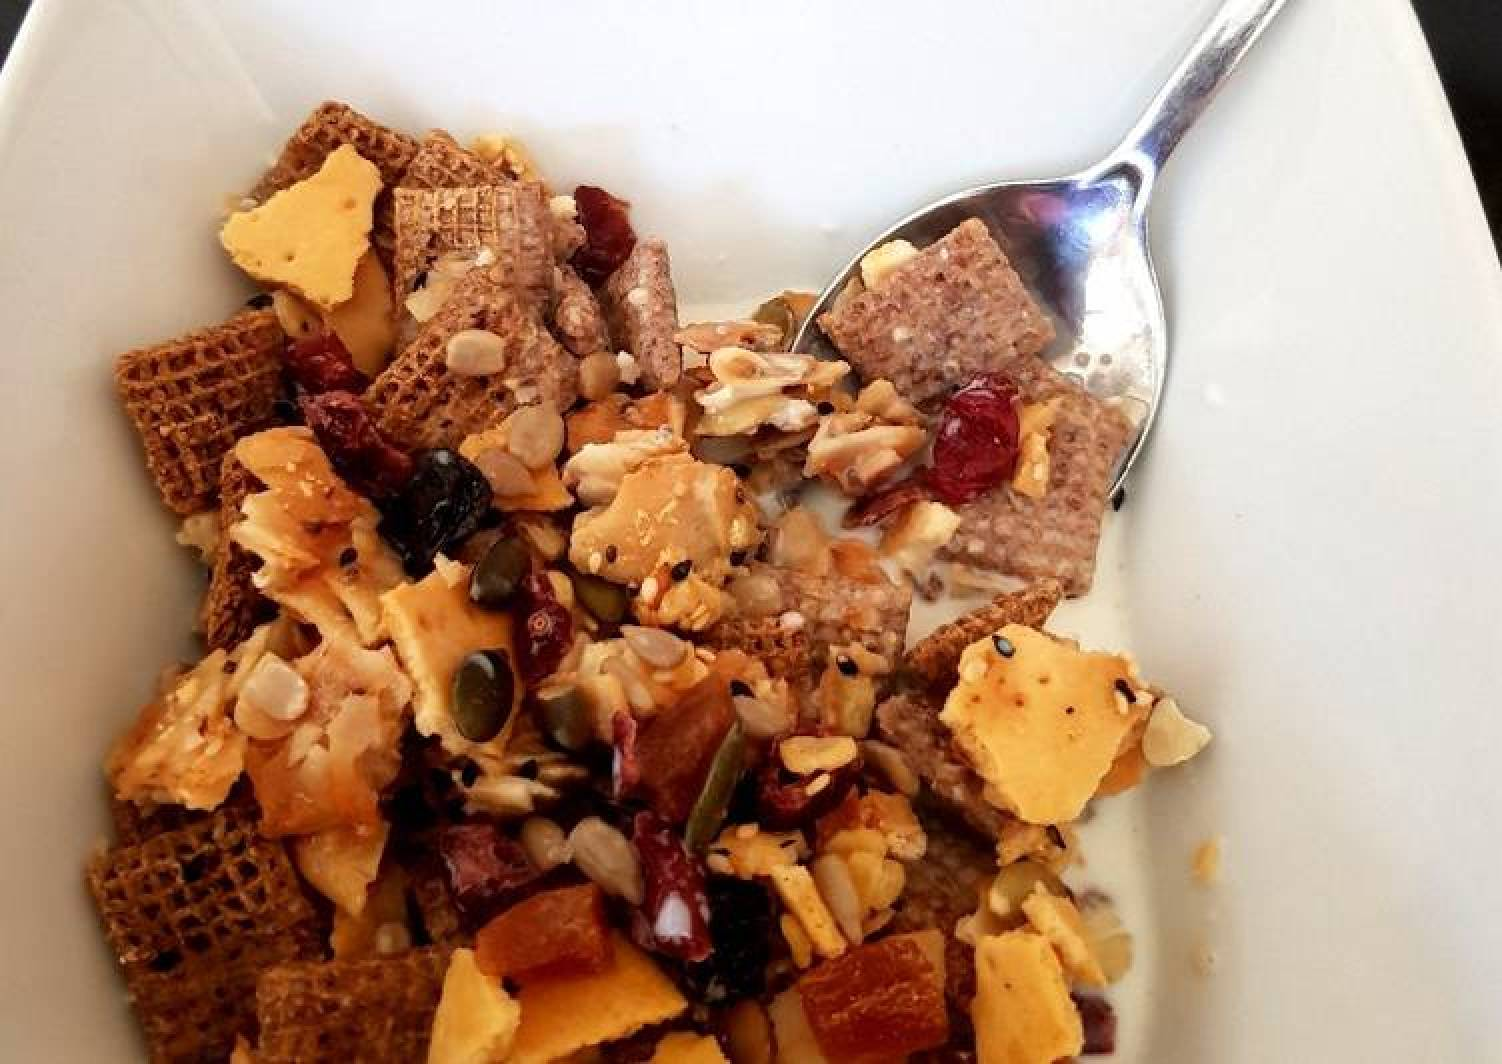 A Healthy Mix Breakfast Cereal. 😀